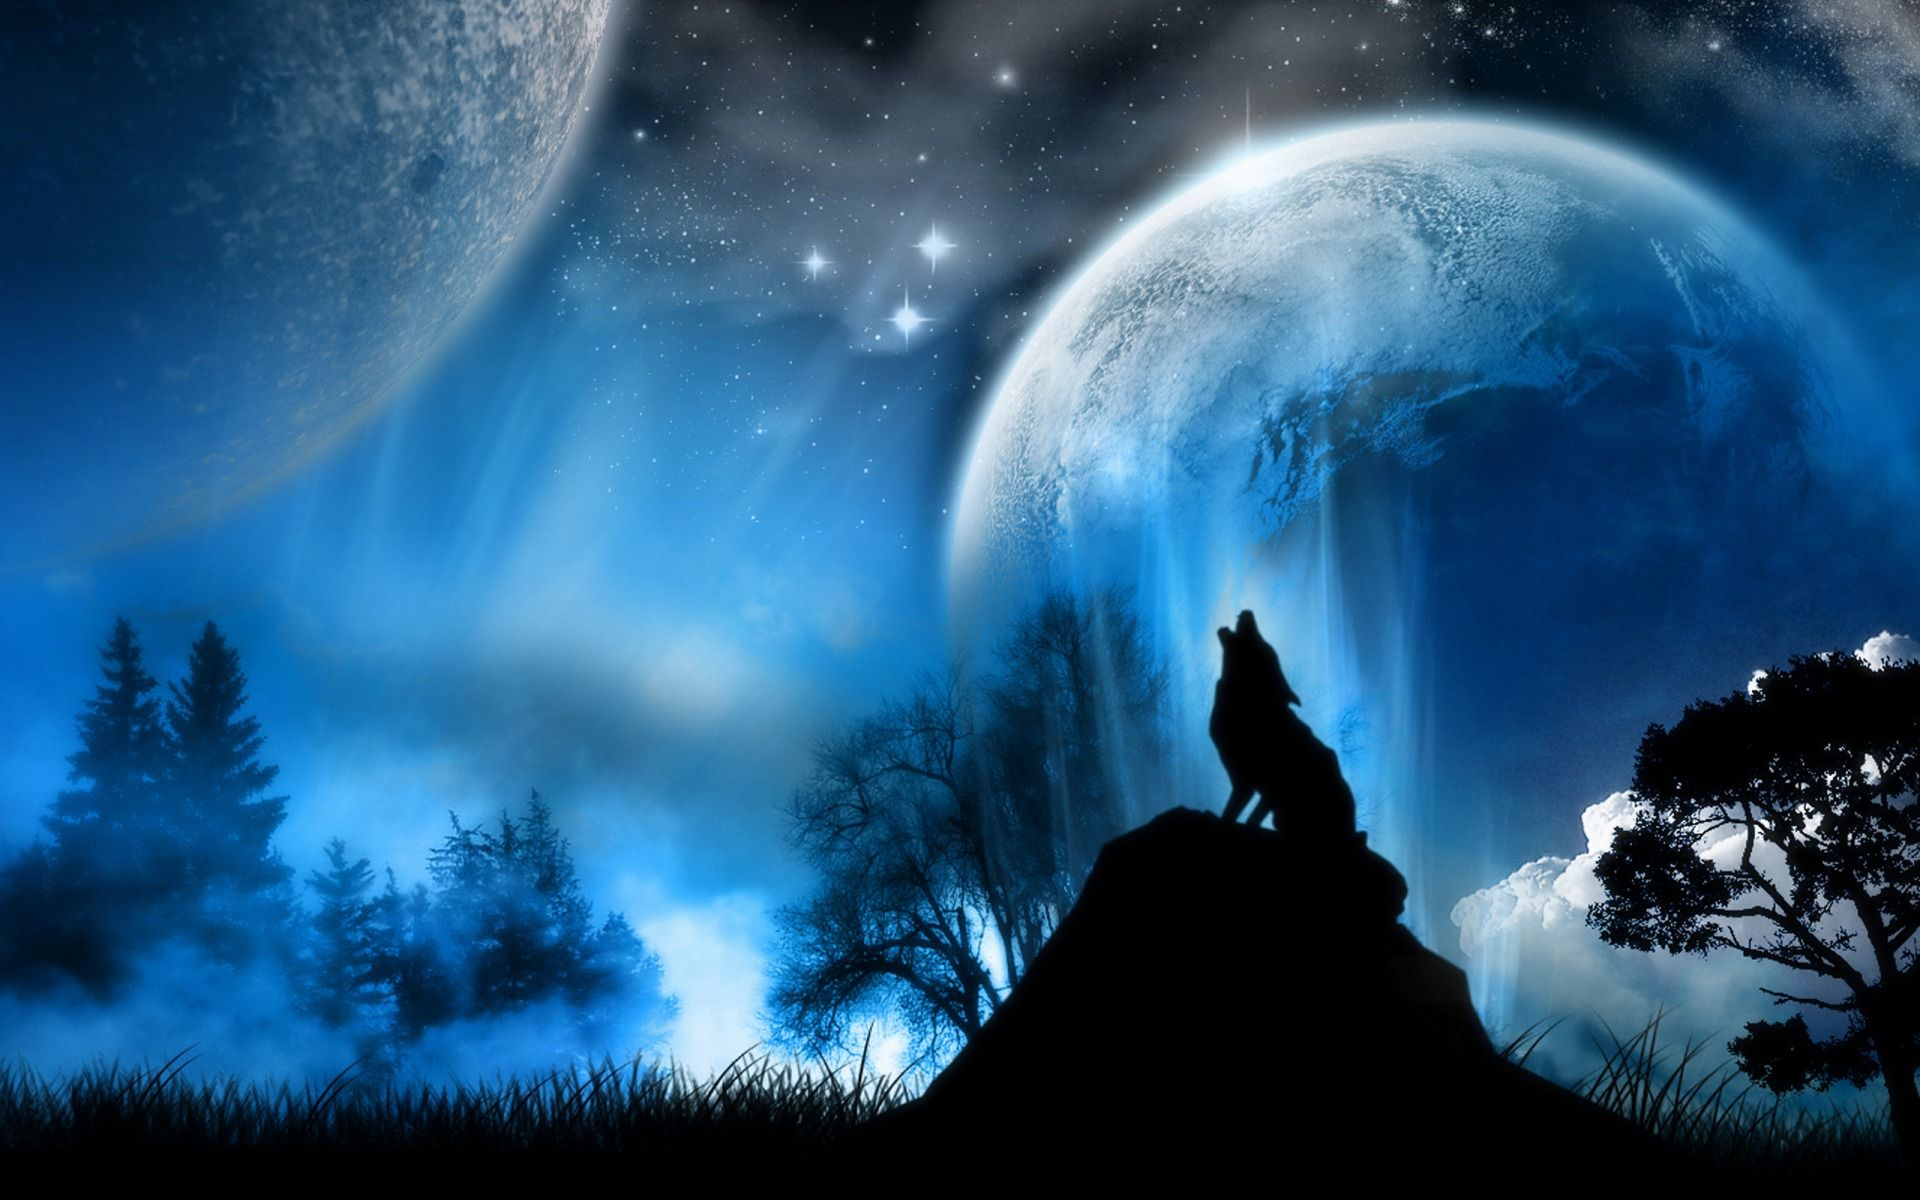 cool backgrounds | moon wolves background cool wallpaper images